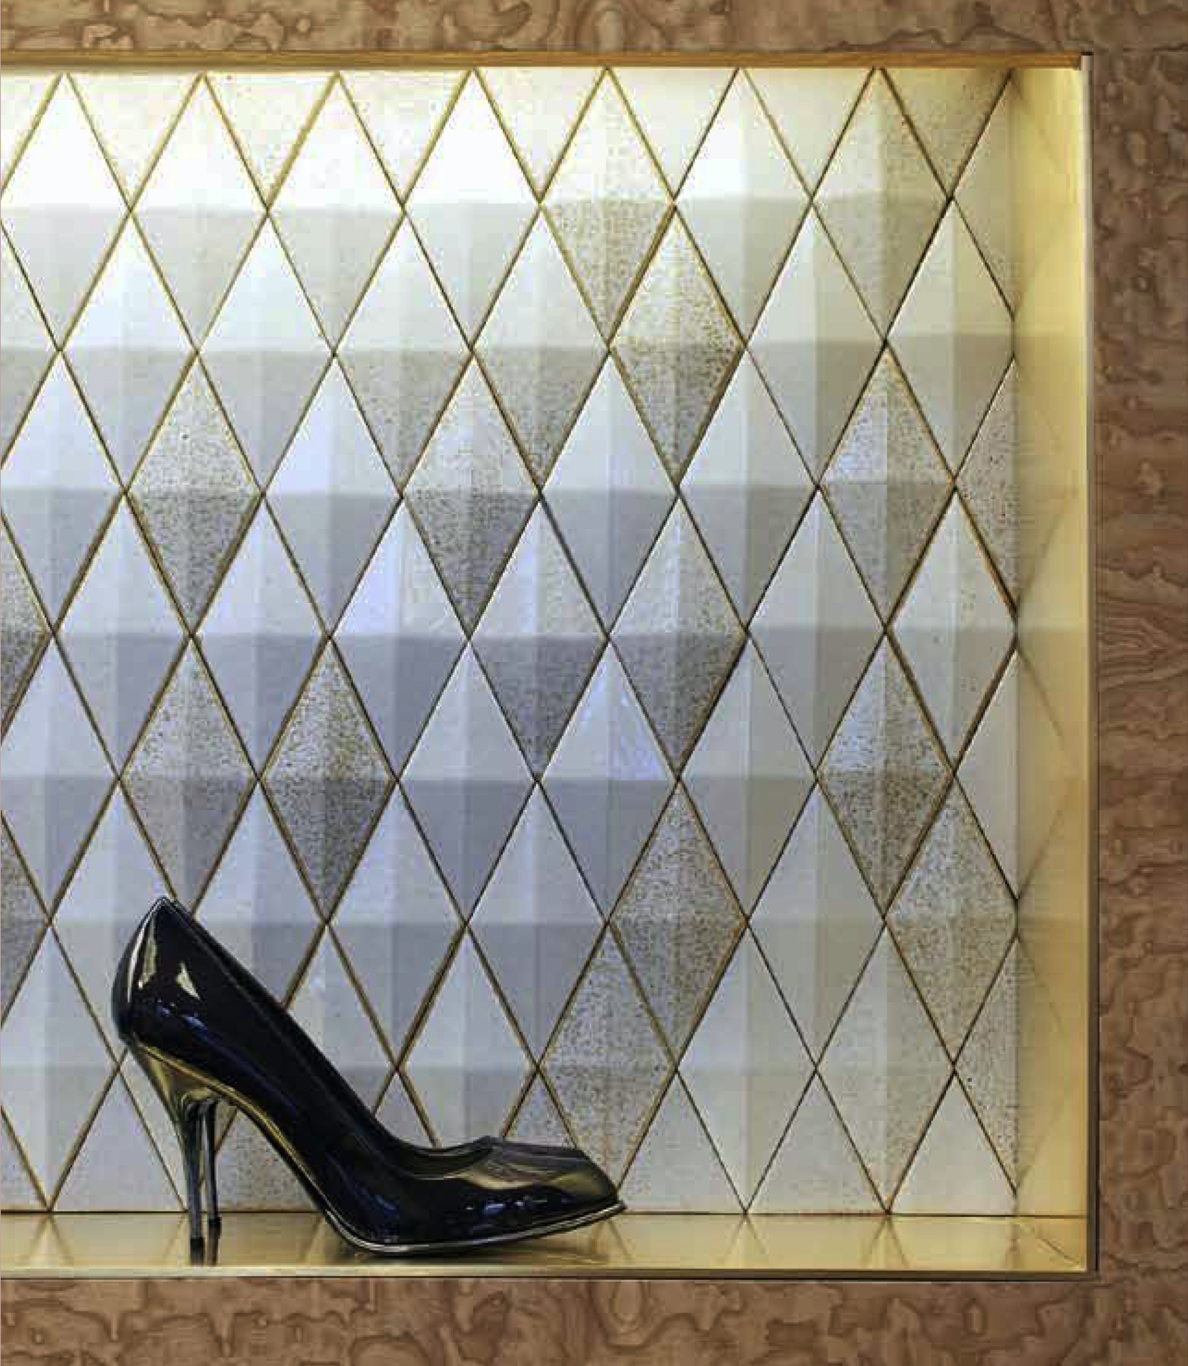 3D Diamond Tiles - Salt & Pepper - 3d Diamond ceramic tiles are characterized by a rhombus shape and are sized cm 24×14 cm. 